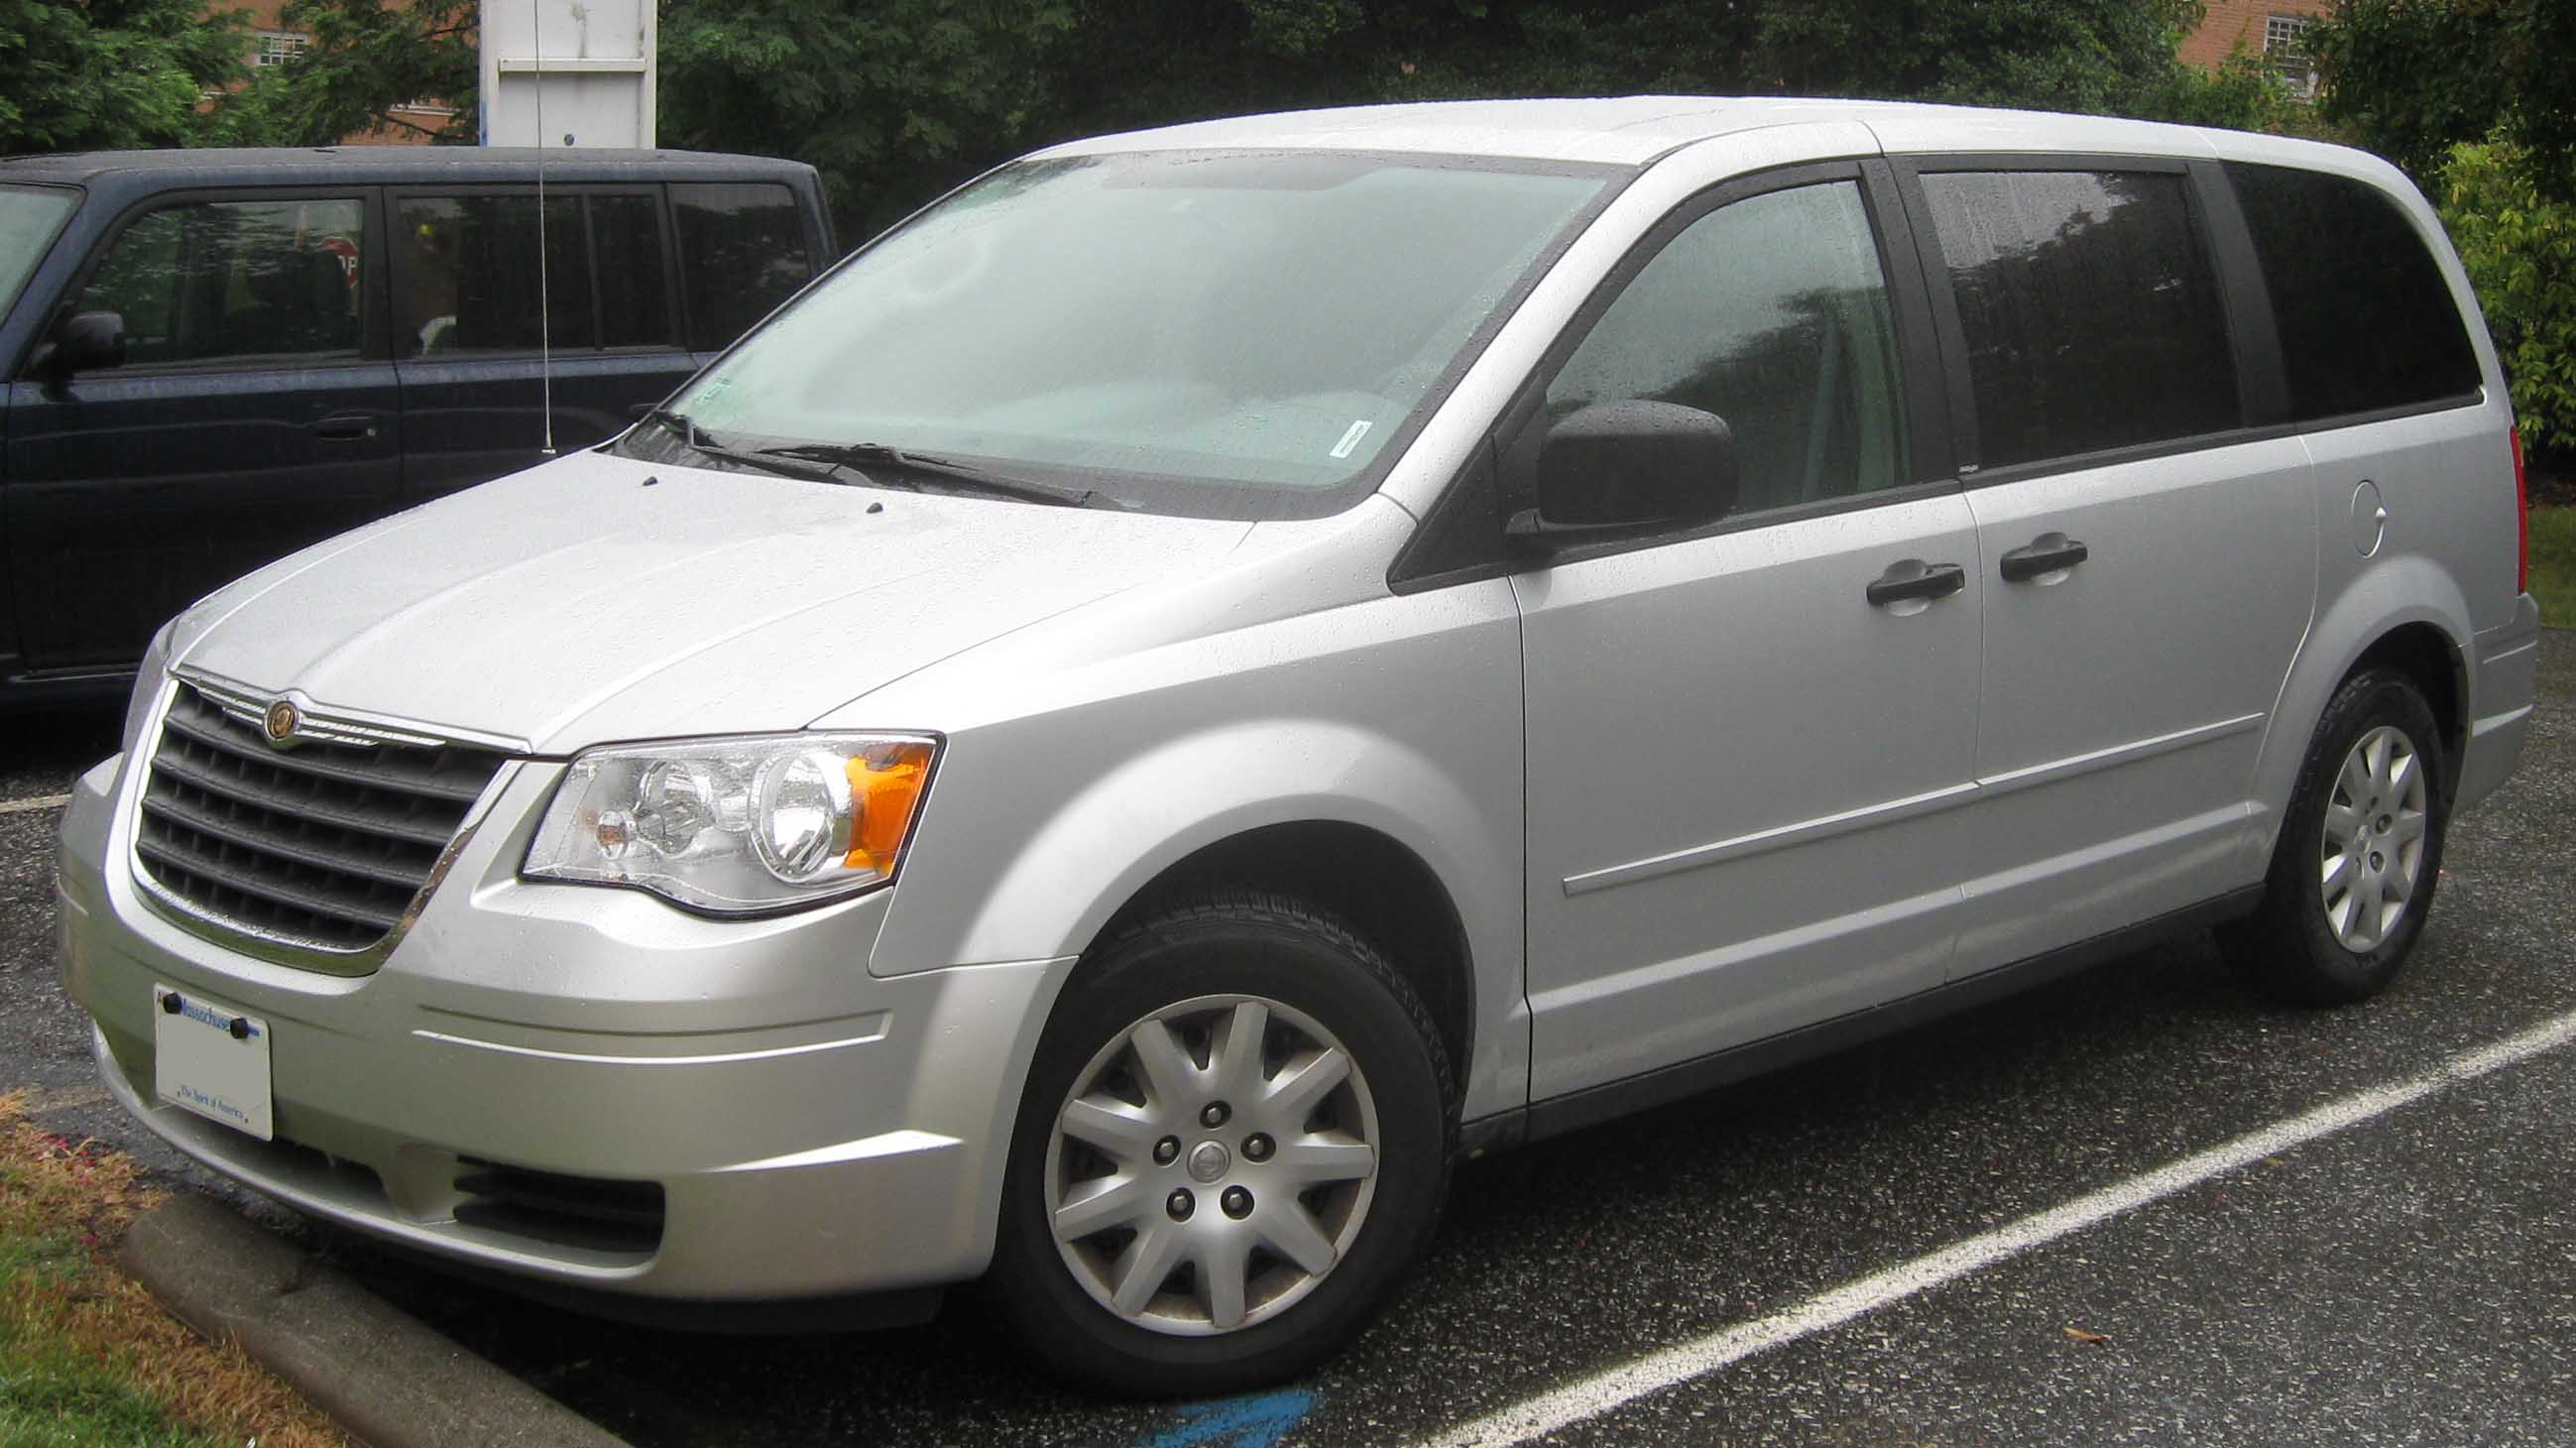 chrysler town & country pics